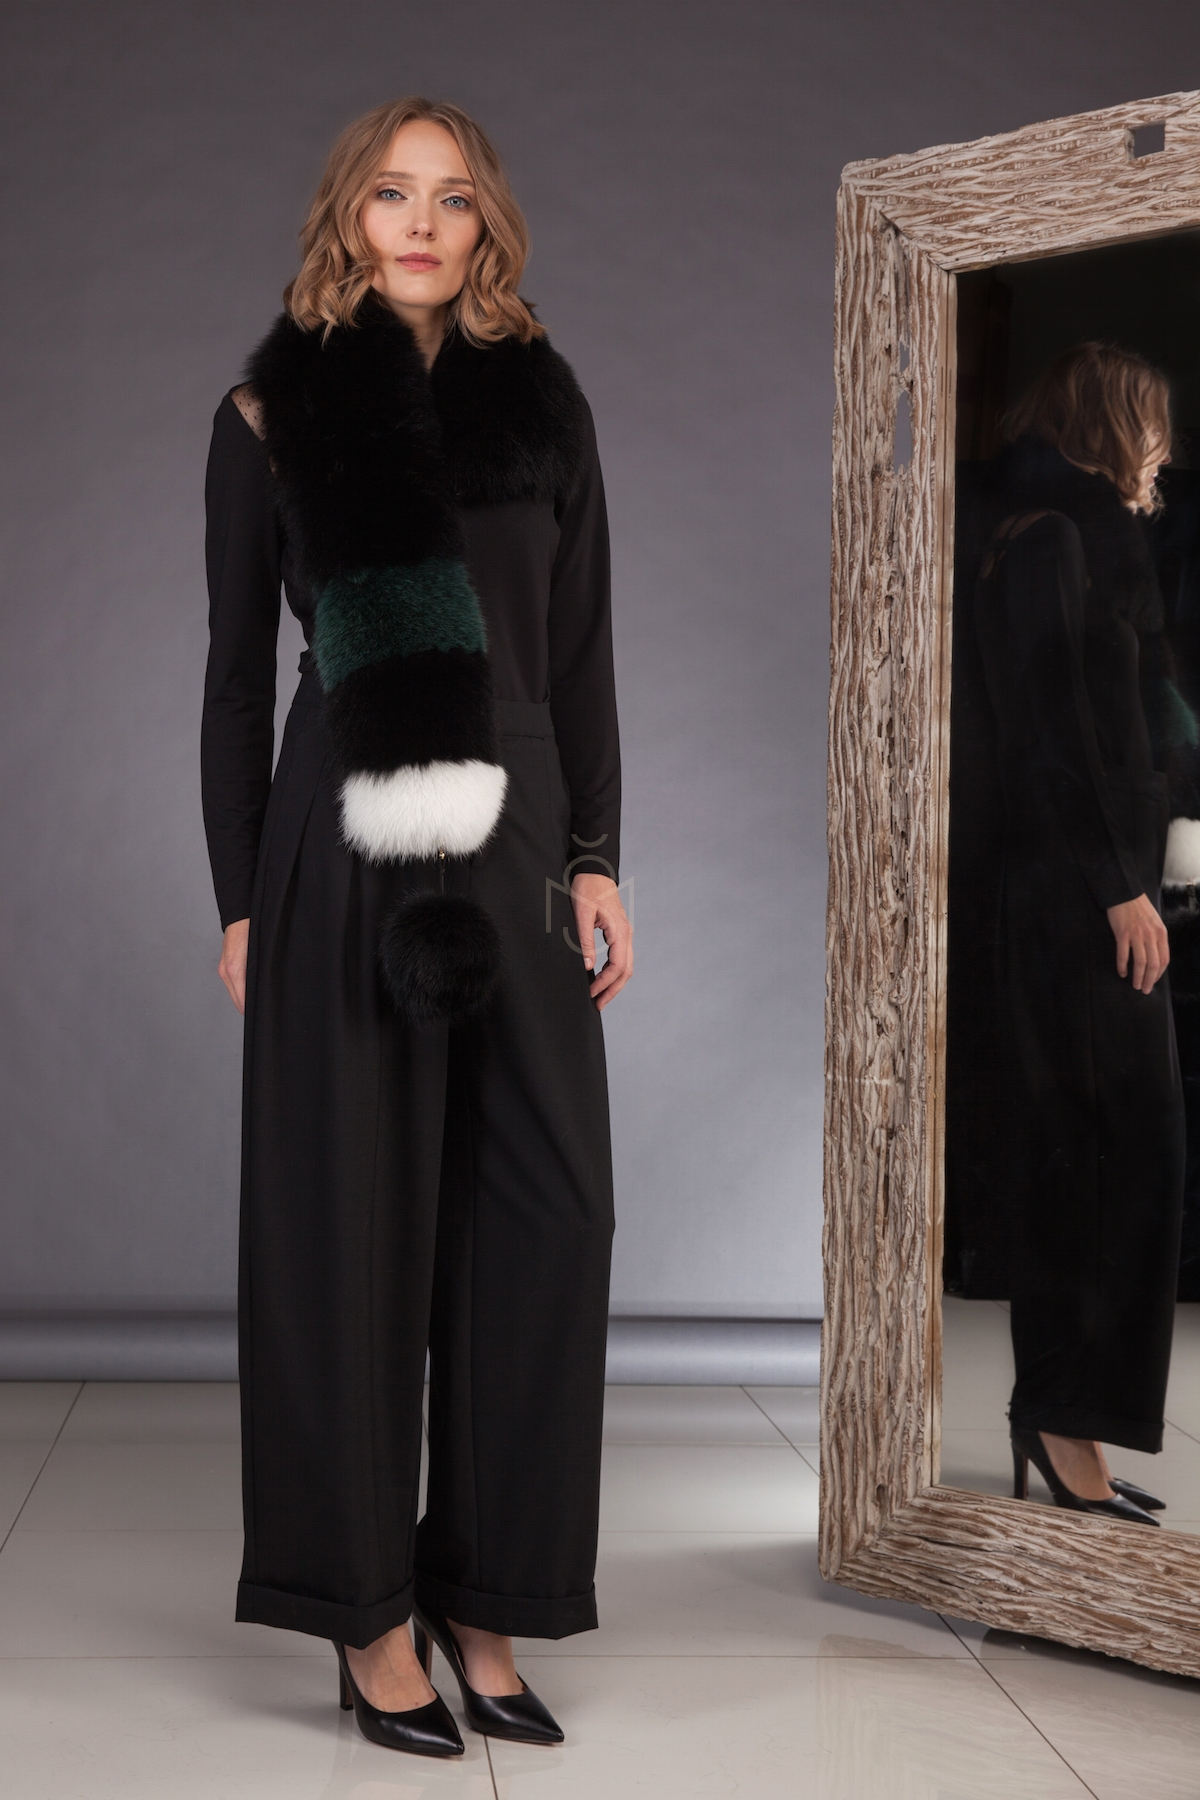 Contrast fox fur scarf with pinnable pom-pom made by SILTA MADA fur studio in Vilnius